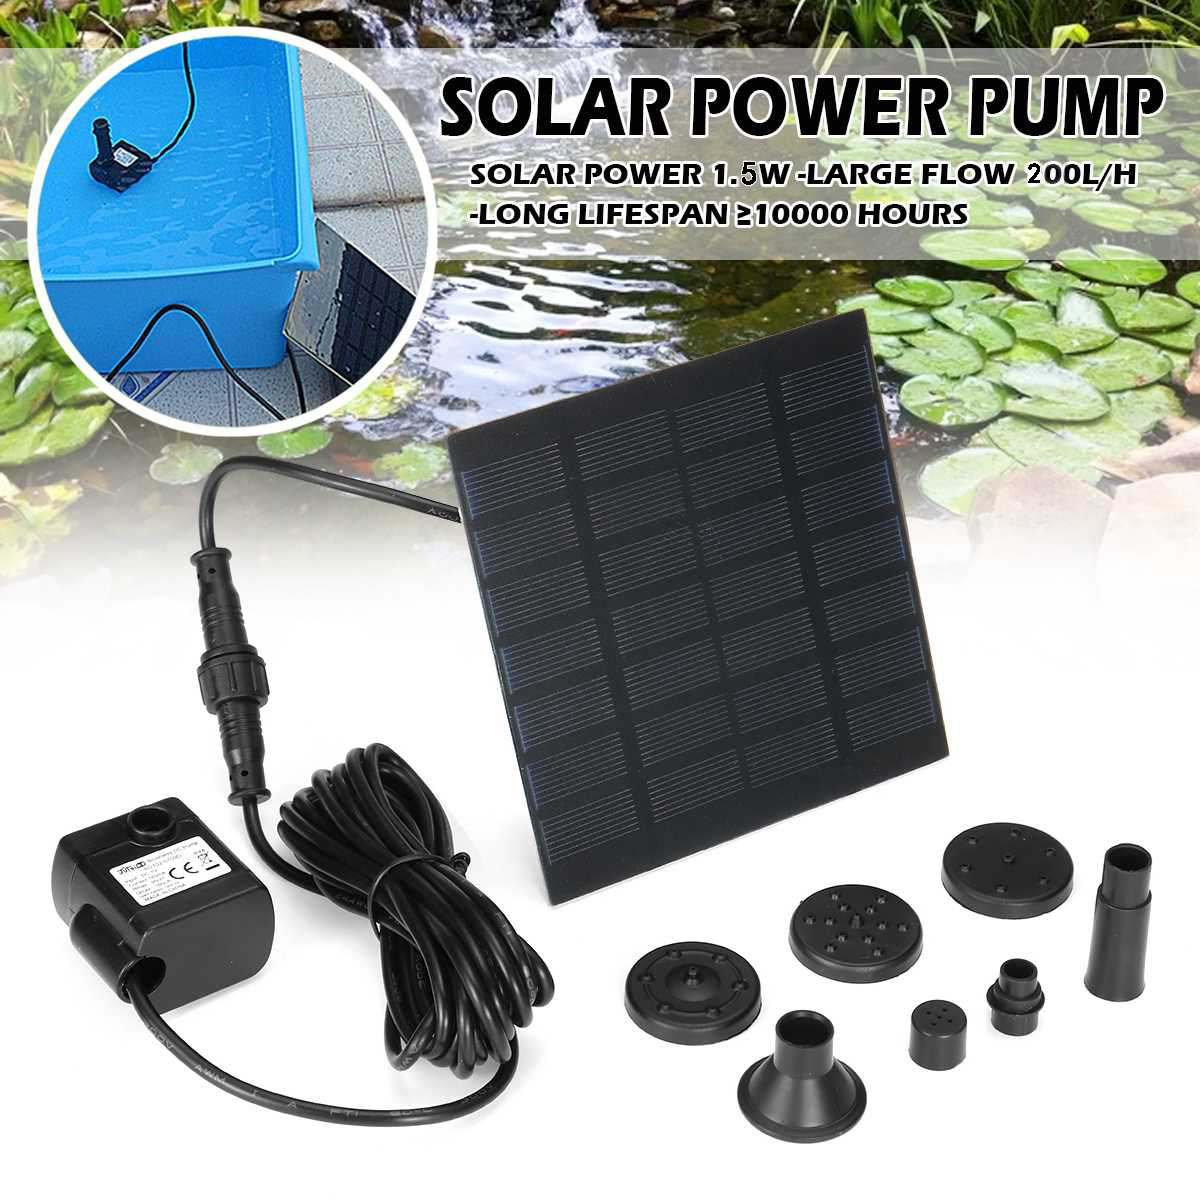 8W Solar Fountain Pump for Bird Bath,200L//H Solar Powered Submersible Water Pump Kit for Pool,Pond,Garden Decoration